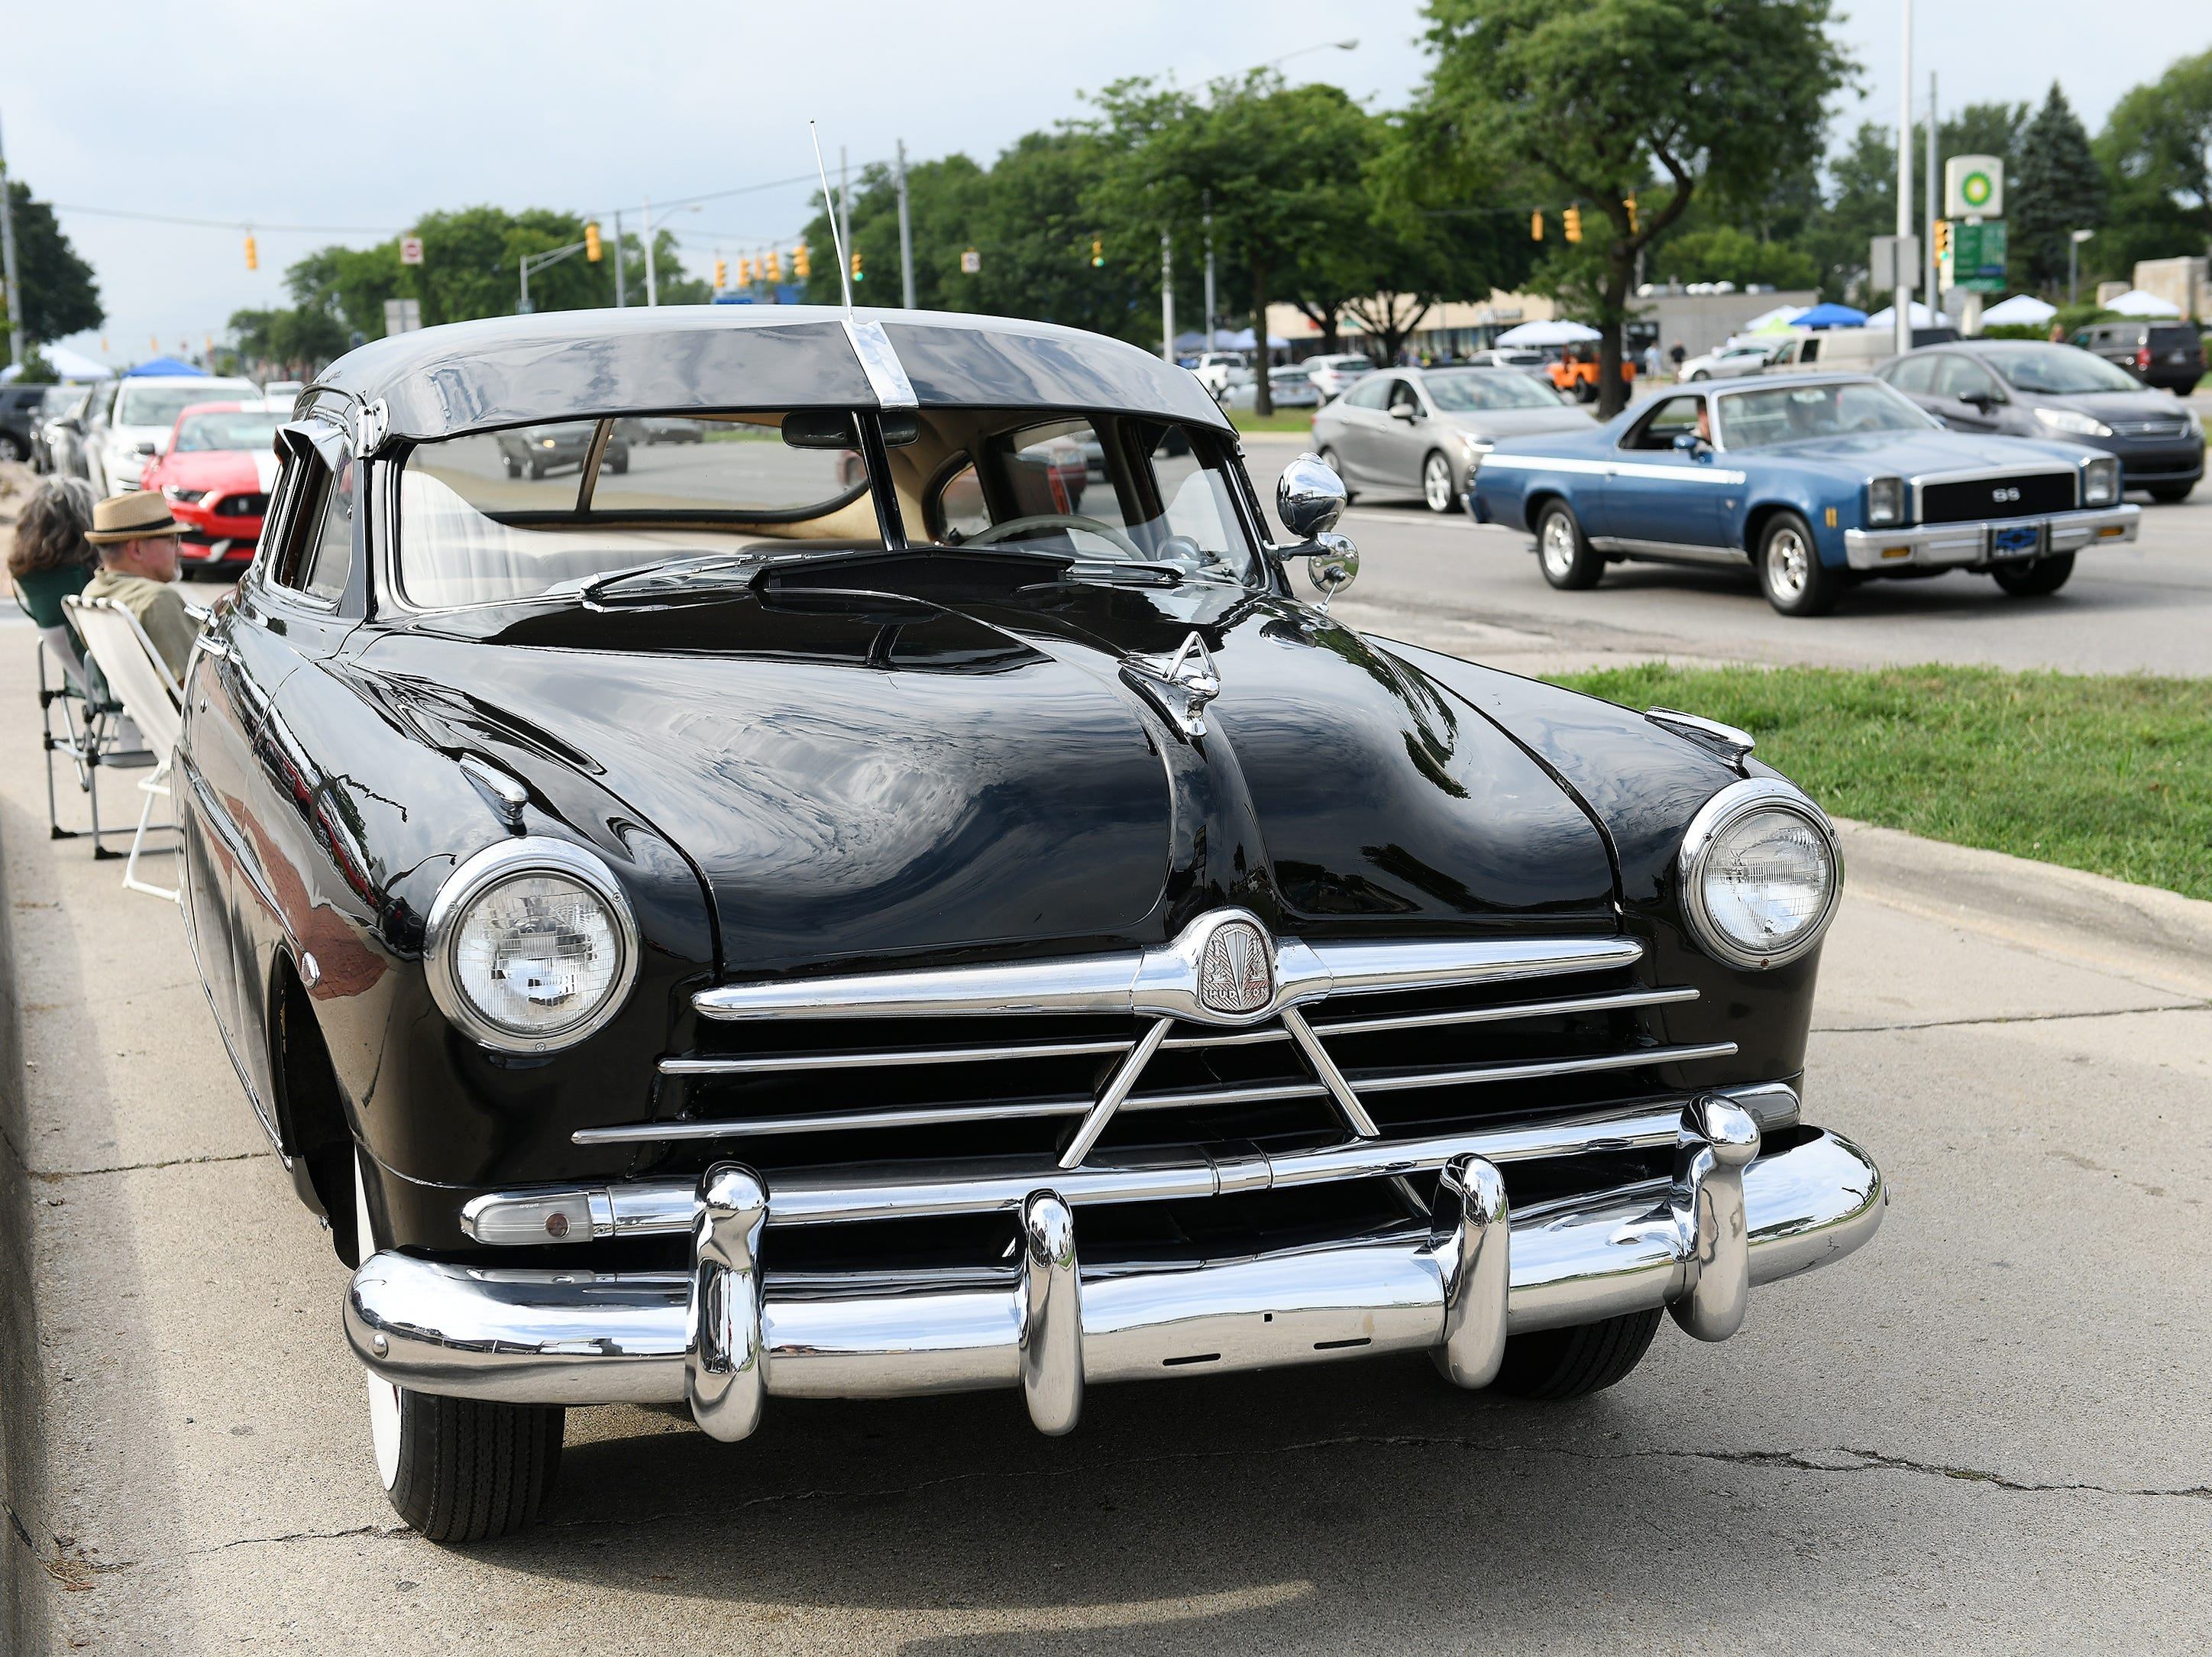 Heidi and Duane Sabella's 1950 Hudson Super Six sits on display along Woodward in Berkley Friday night.